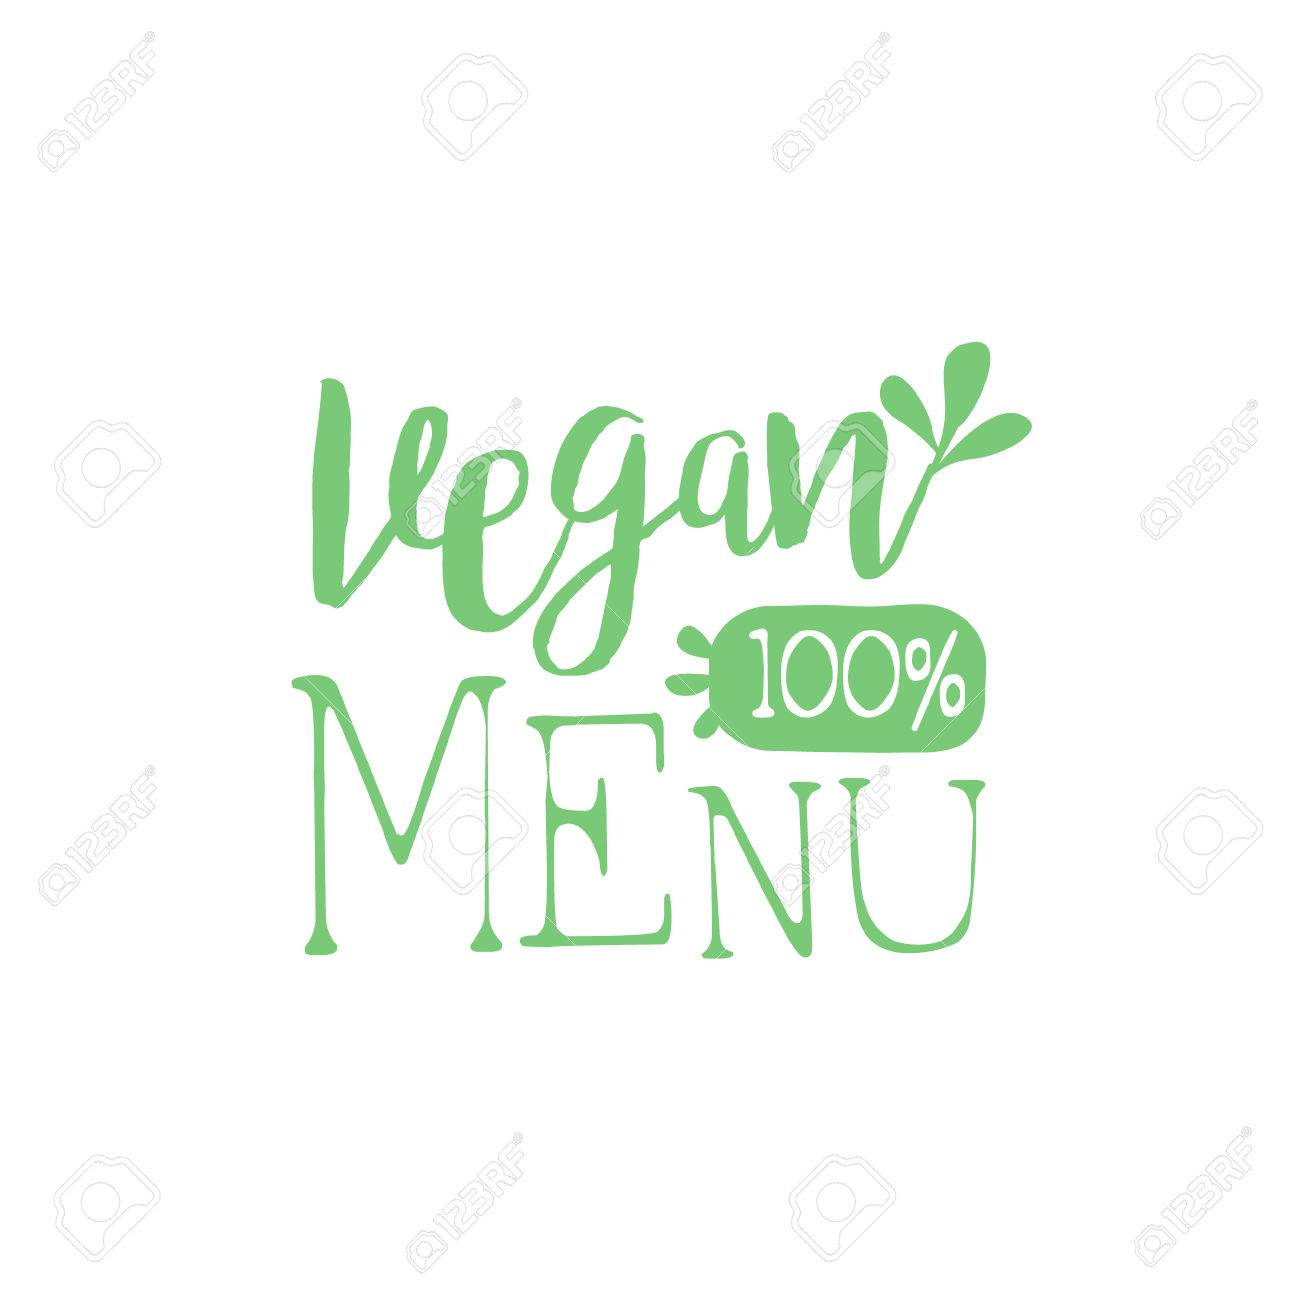 Vegan Calligraphic Cafe Board Vegetarian Cafe New Menu Promotion Royalty Free Cliparts Vectors And Stock Illustration Image 58072457